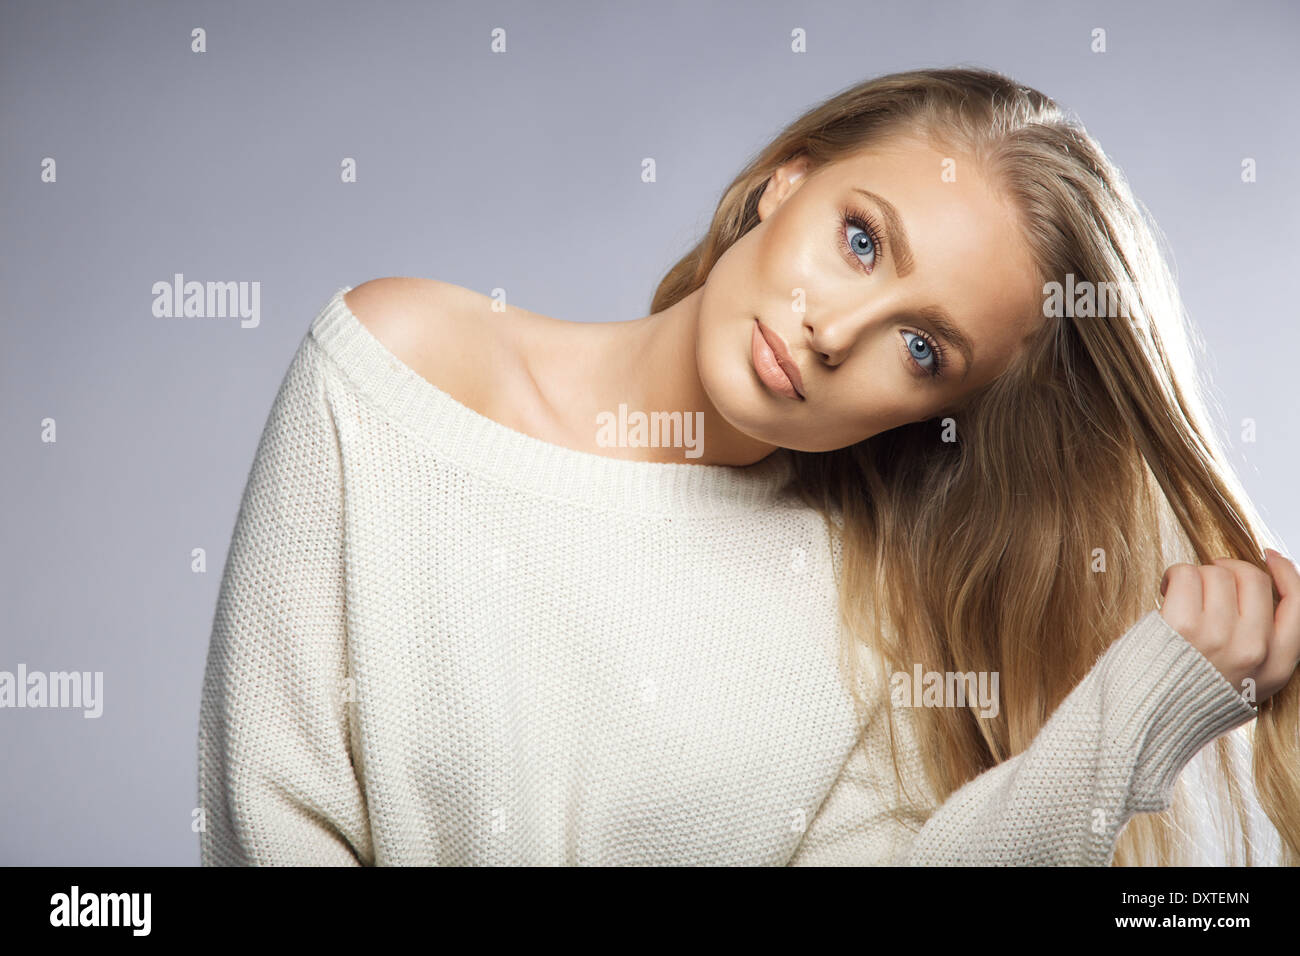 Portrait of beautiful young woman holding her hair. Young blond fashion model looking at camera while pulling her - Stock Image